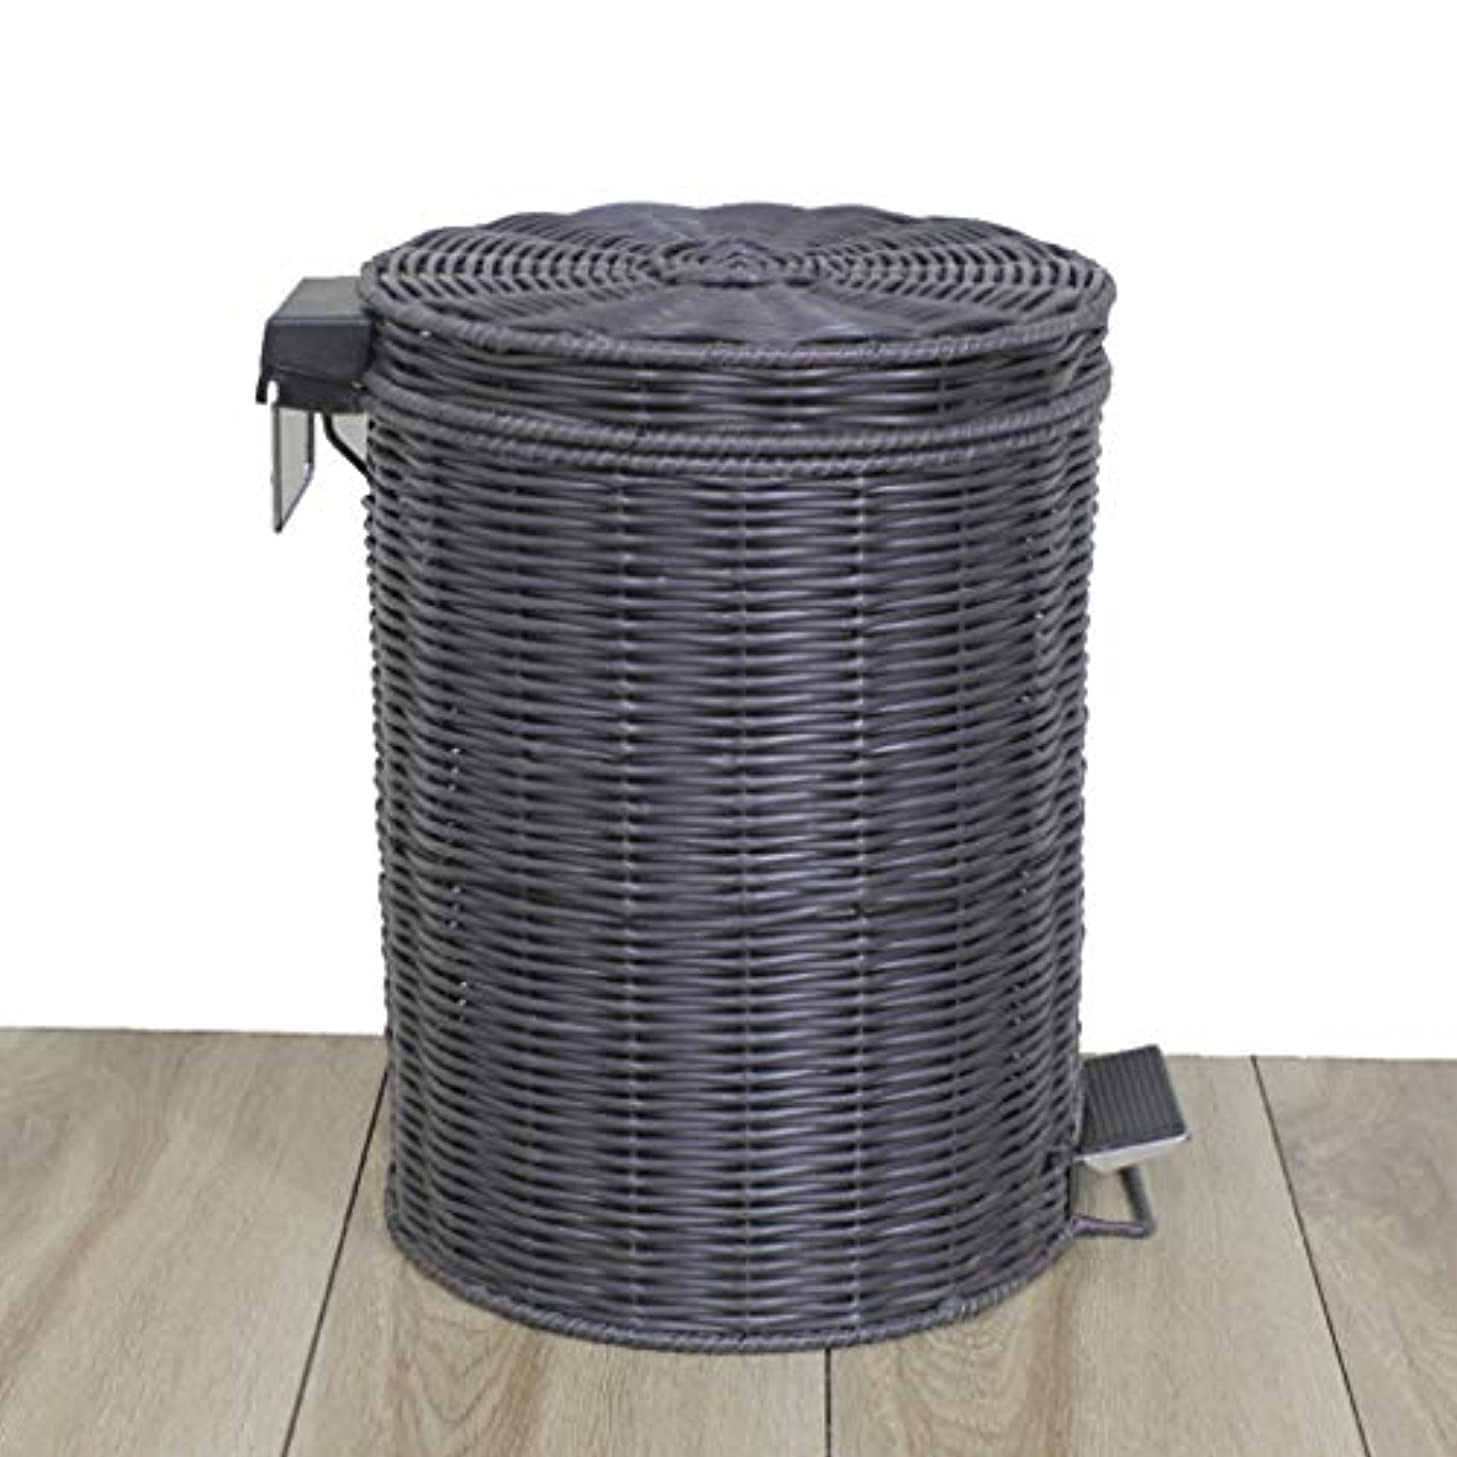 Plastic Rattan Trash Can Pedal 12 Liters with Lid Removable Inner Bucket Household Storage Bucket 27 X 41.5 cm 12 Liters (Color : Black)